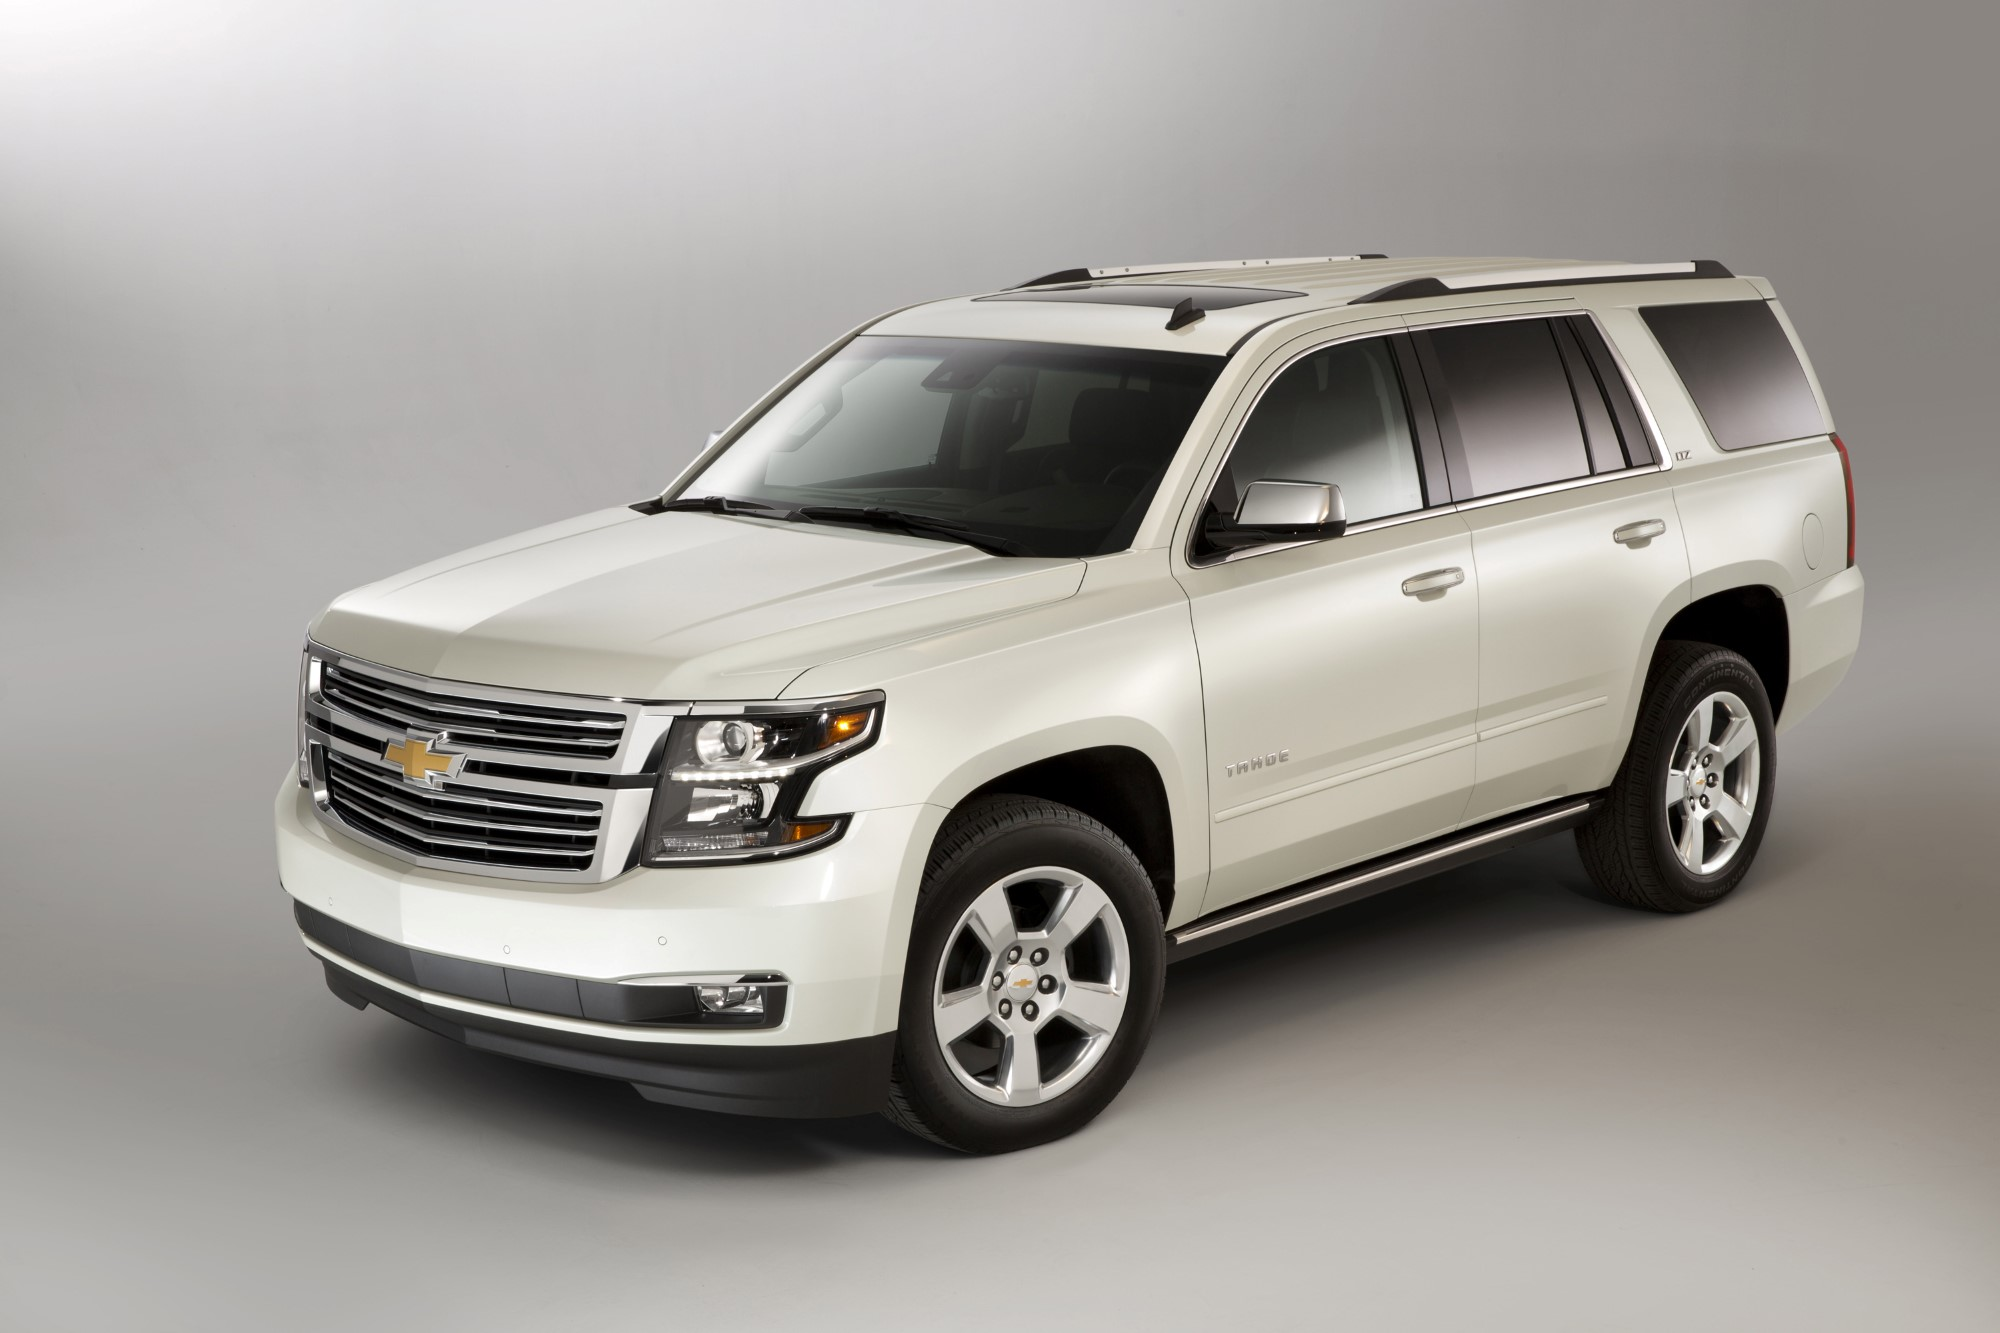 Best used suvs and used pickups for sale - 2015 Chevrolet Tahoe LTZ